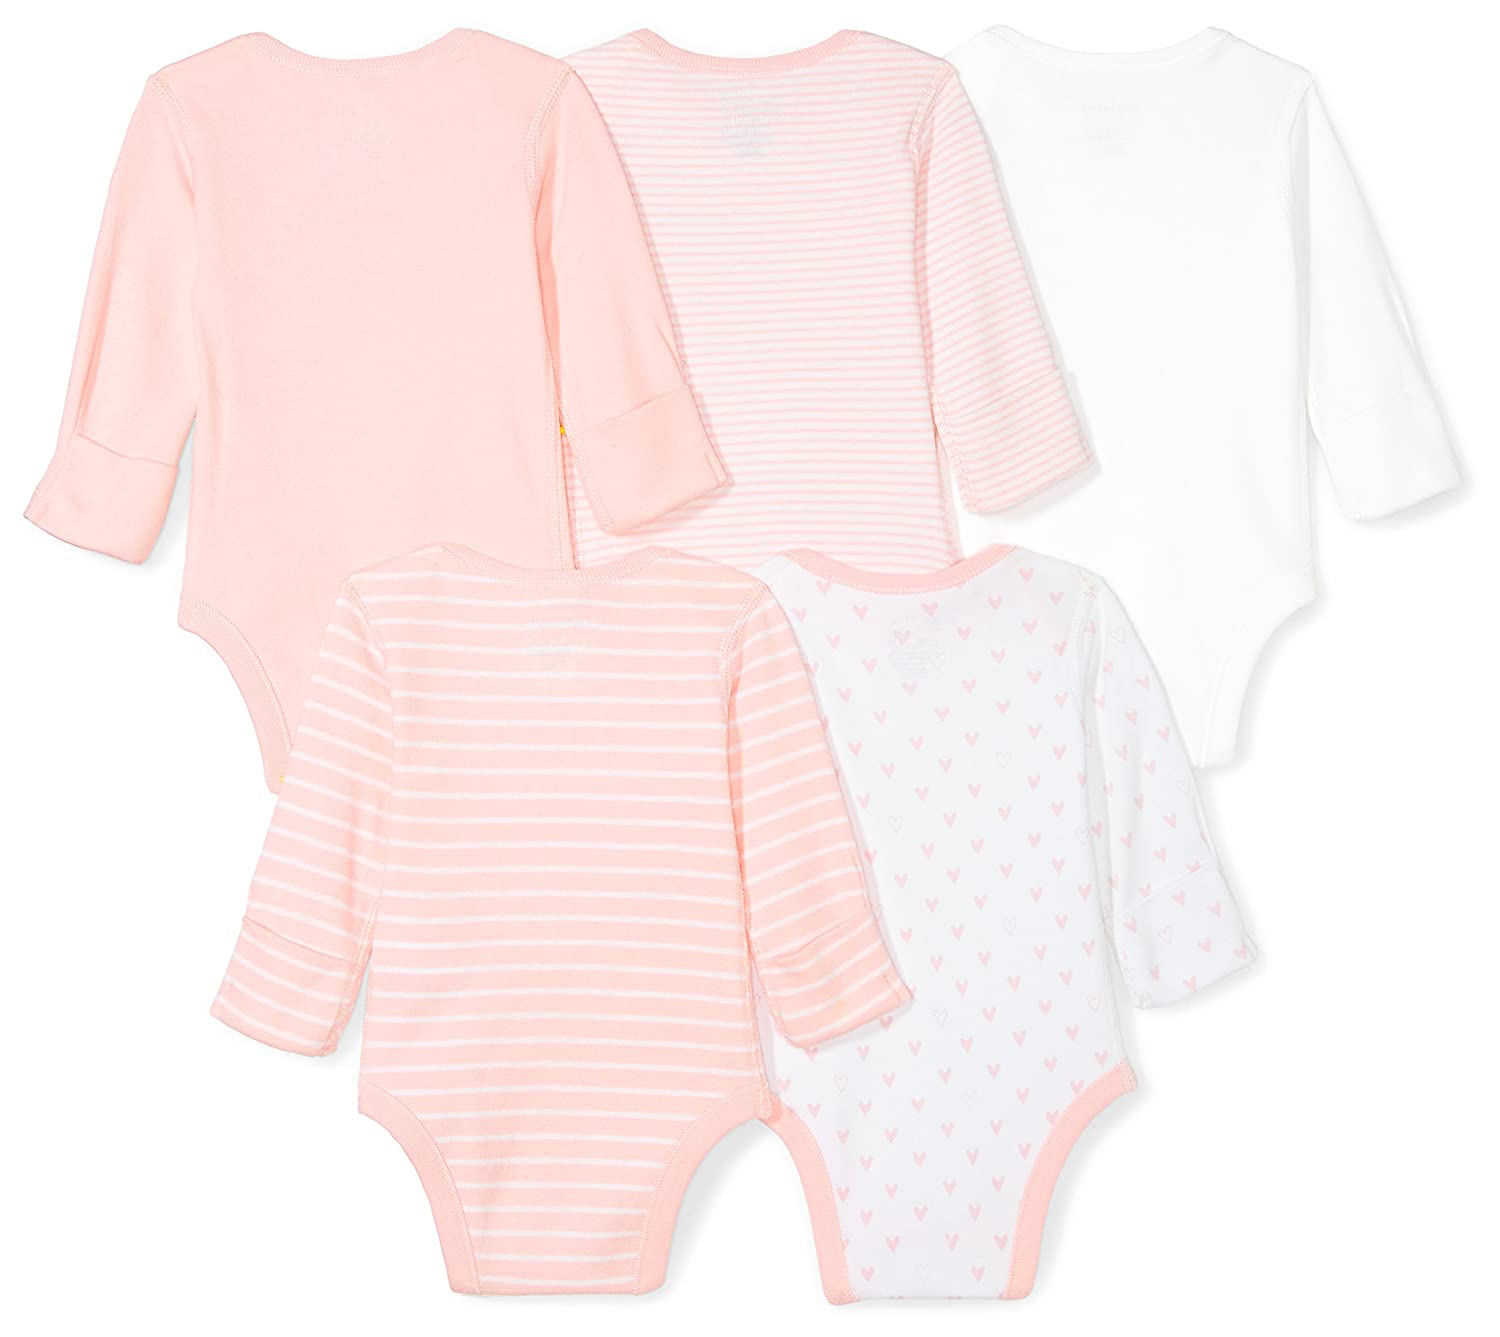 Pink Blush Moon and Back Baby Set of 5 Organic Long-Sleeve Bodysuits 6-9 Months